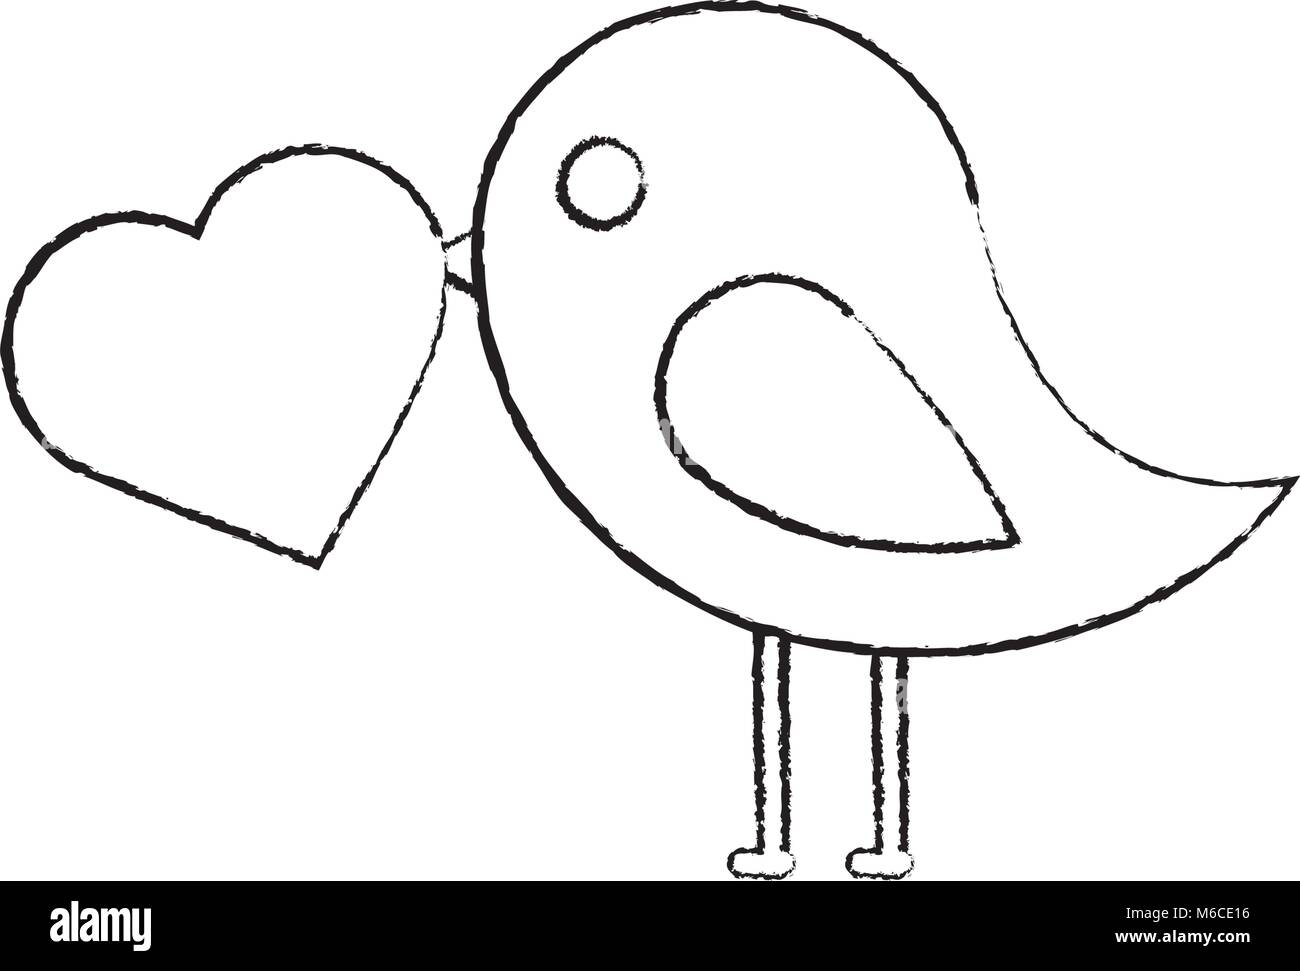 bird cartoon icon image  Stock Vector